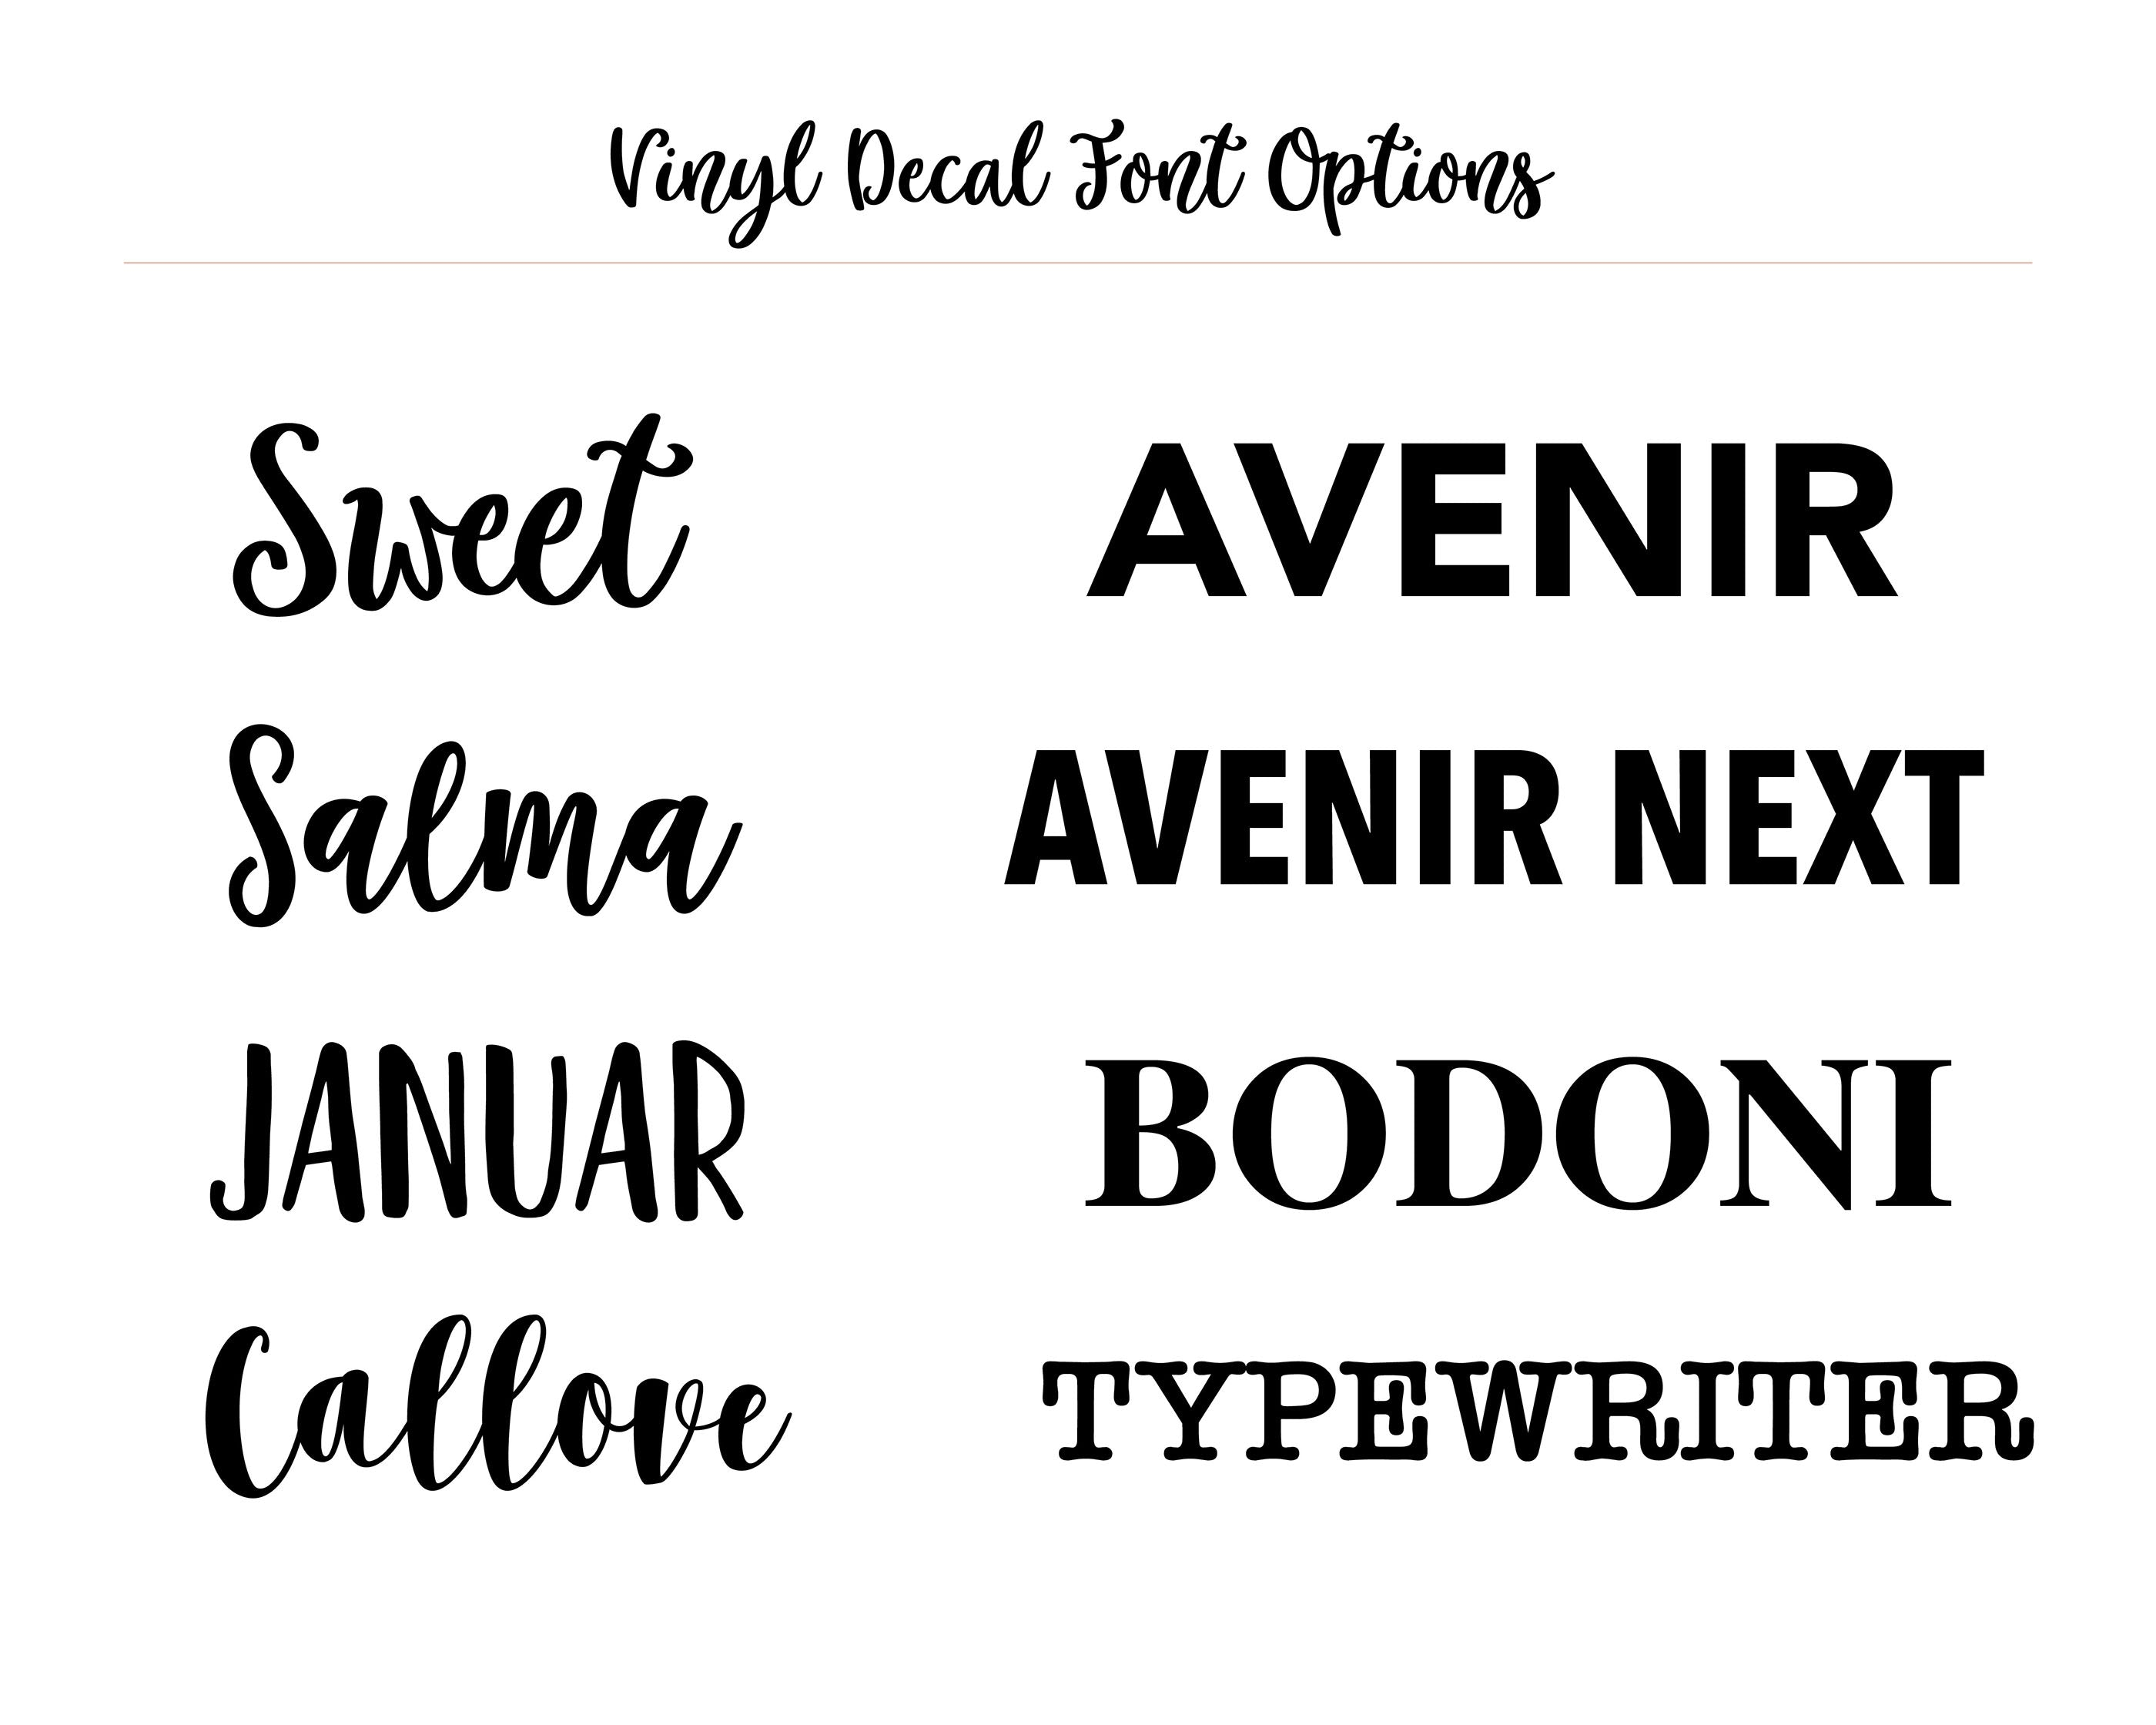 simple & sentimental decal text font options